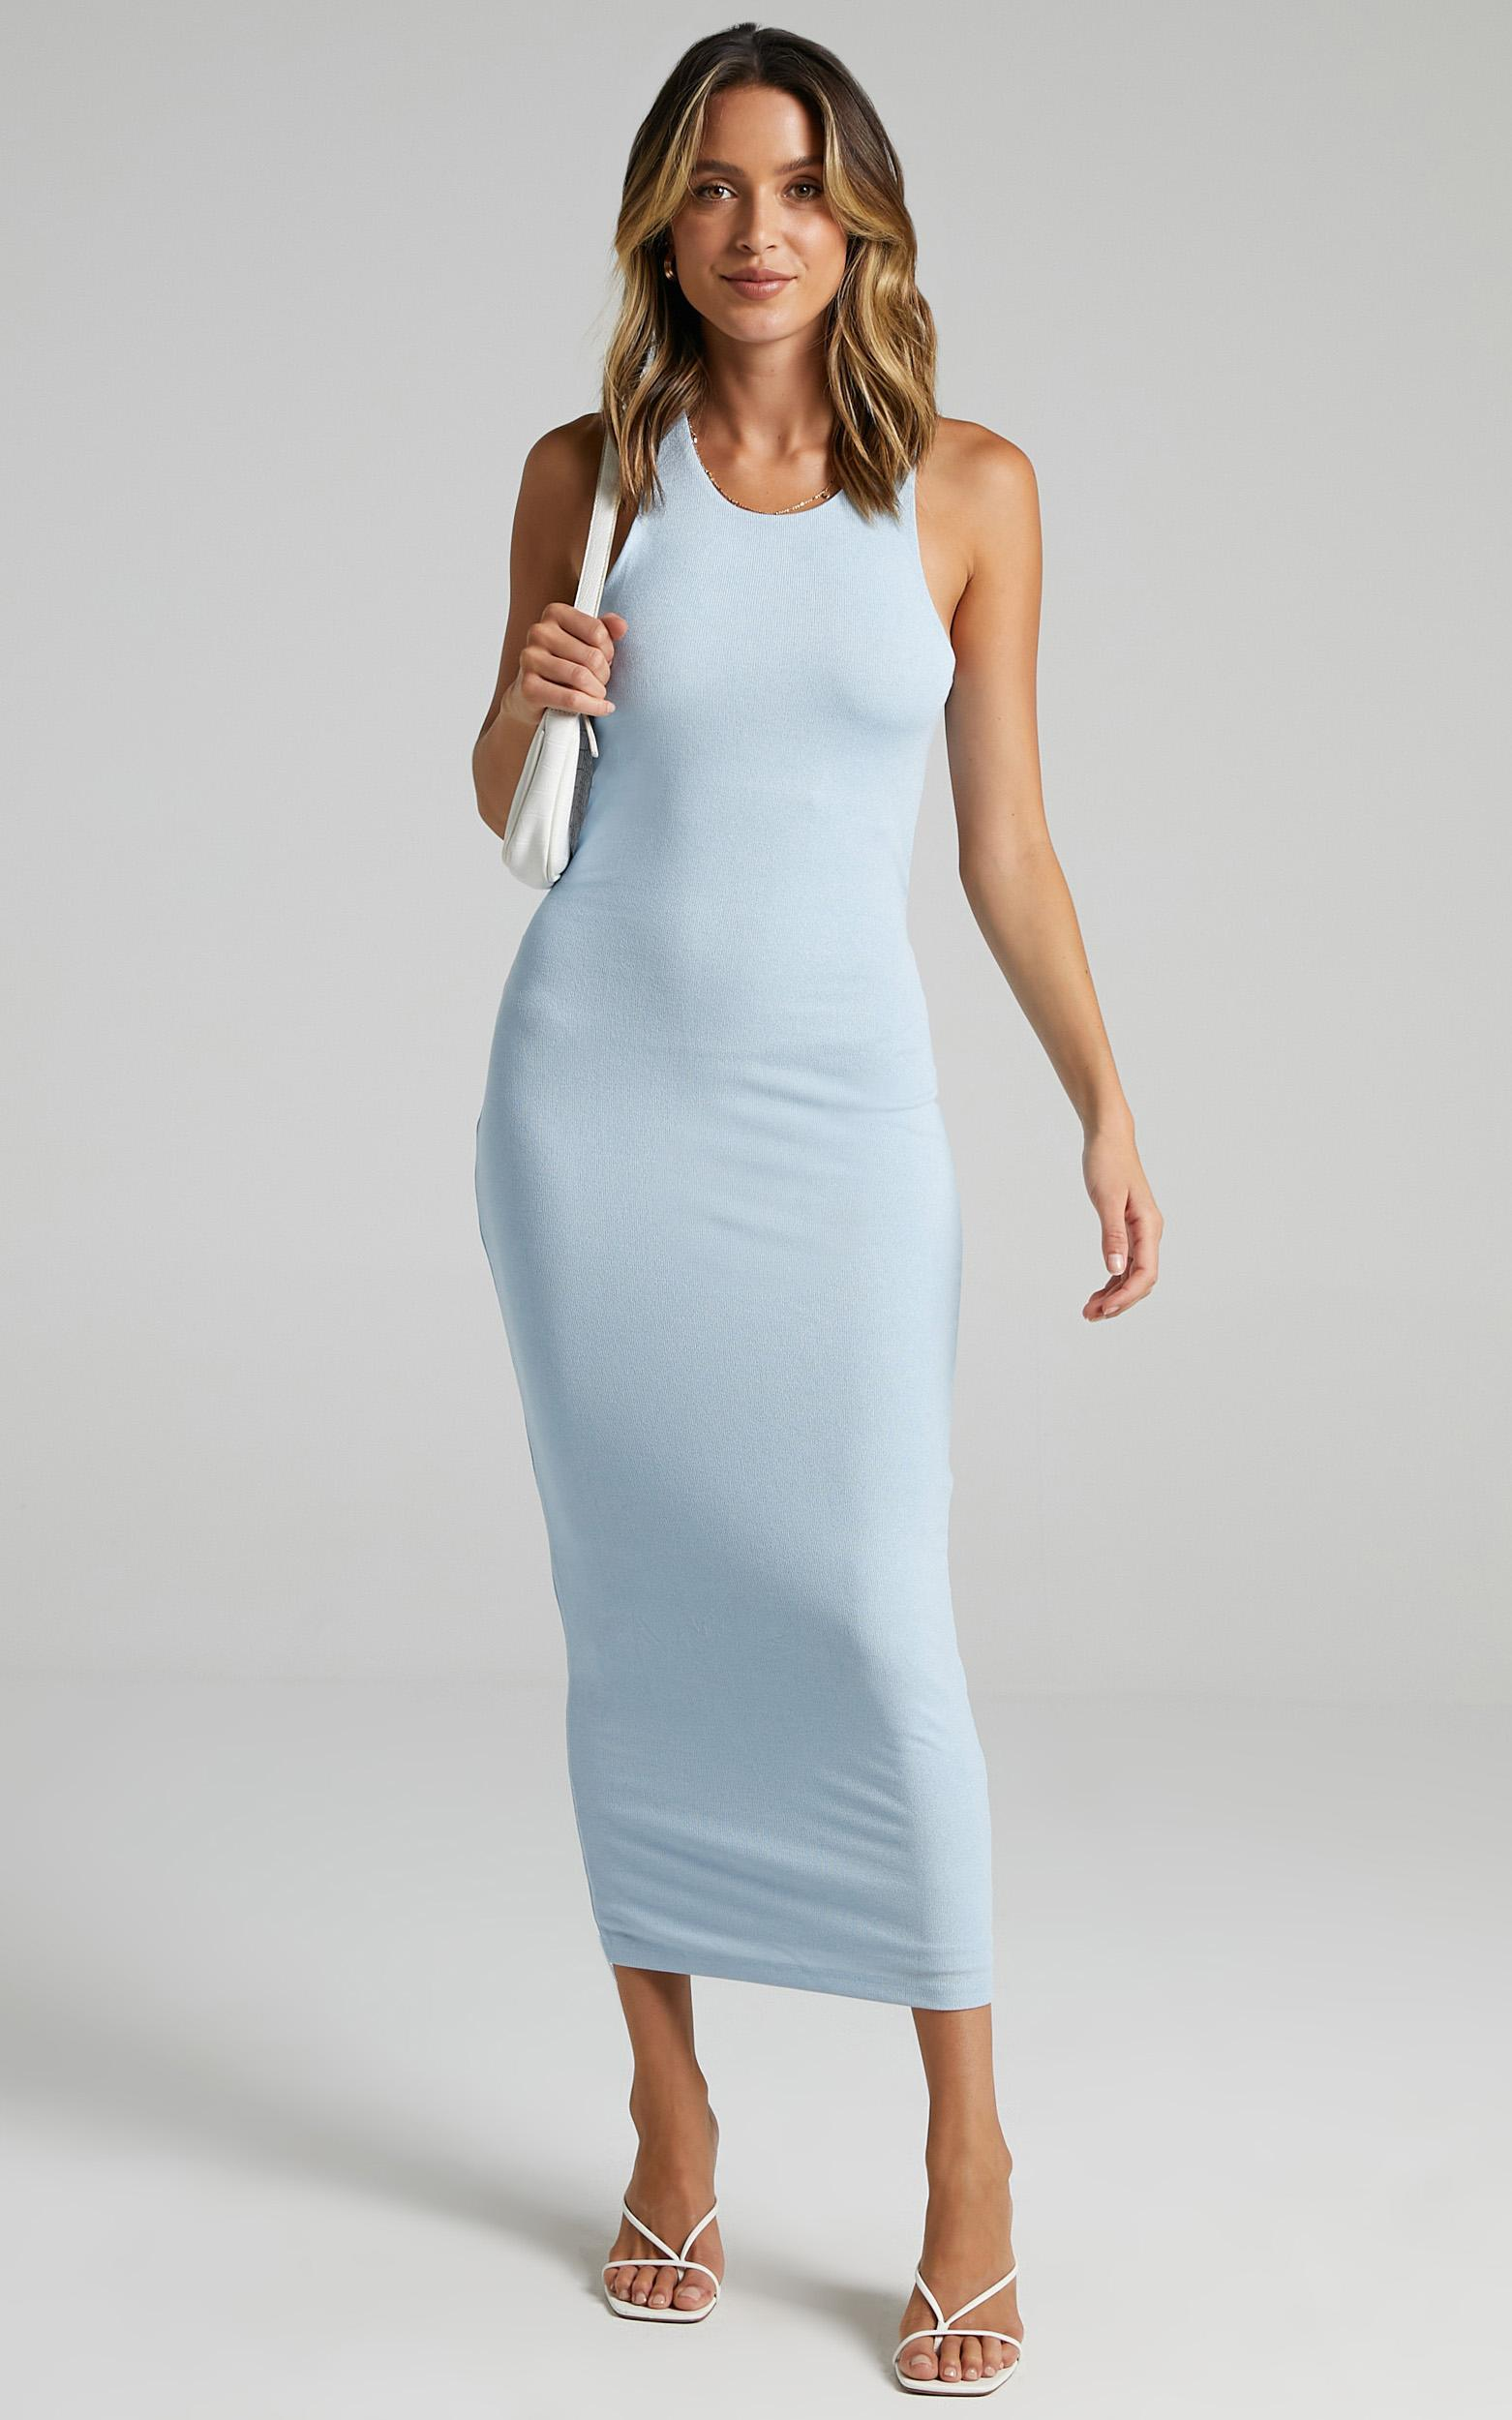 Lioness - The Clare Dress in Blue - XS, BLU2, hi-res image number null